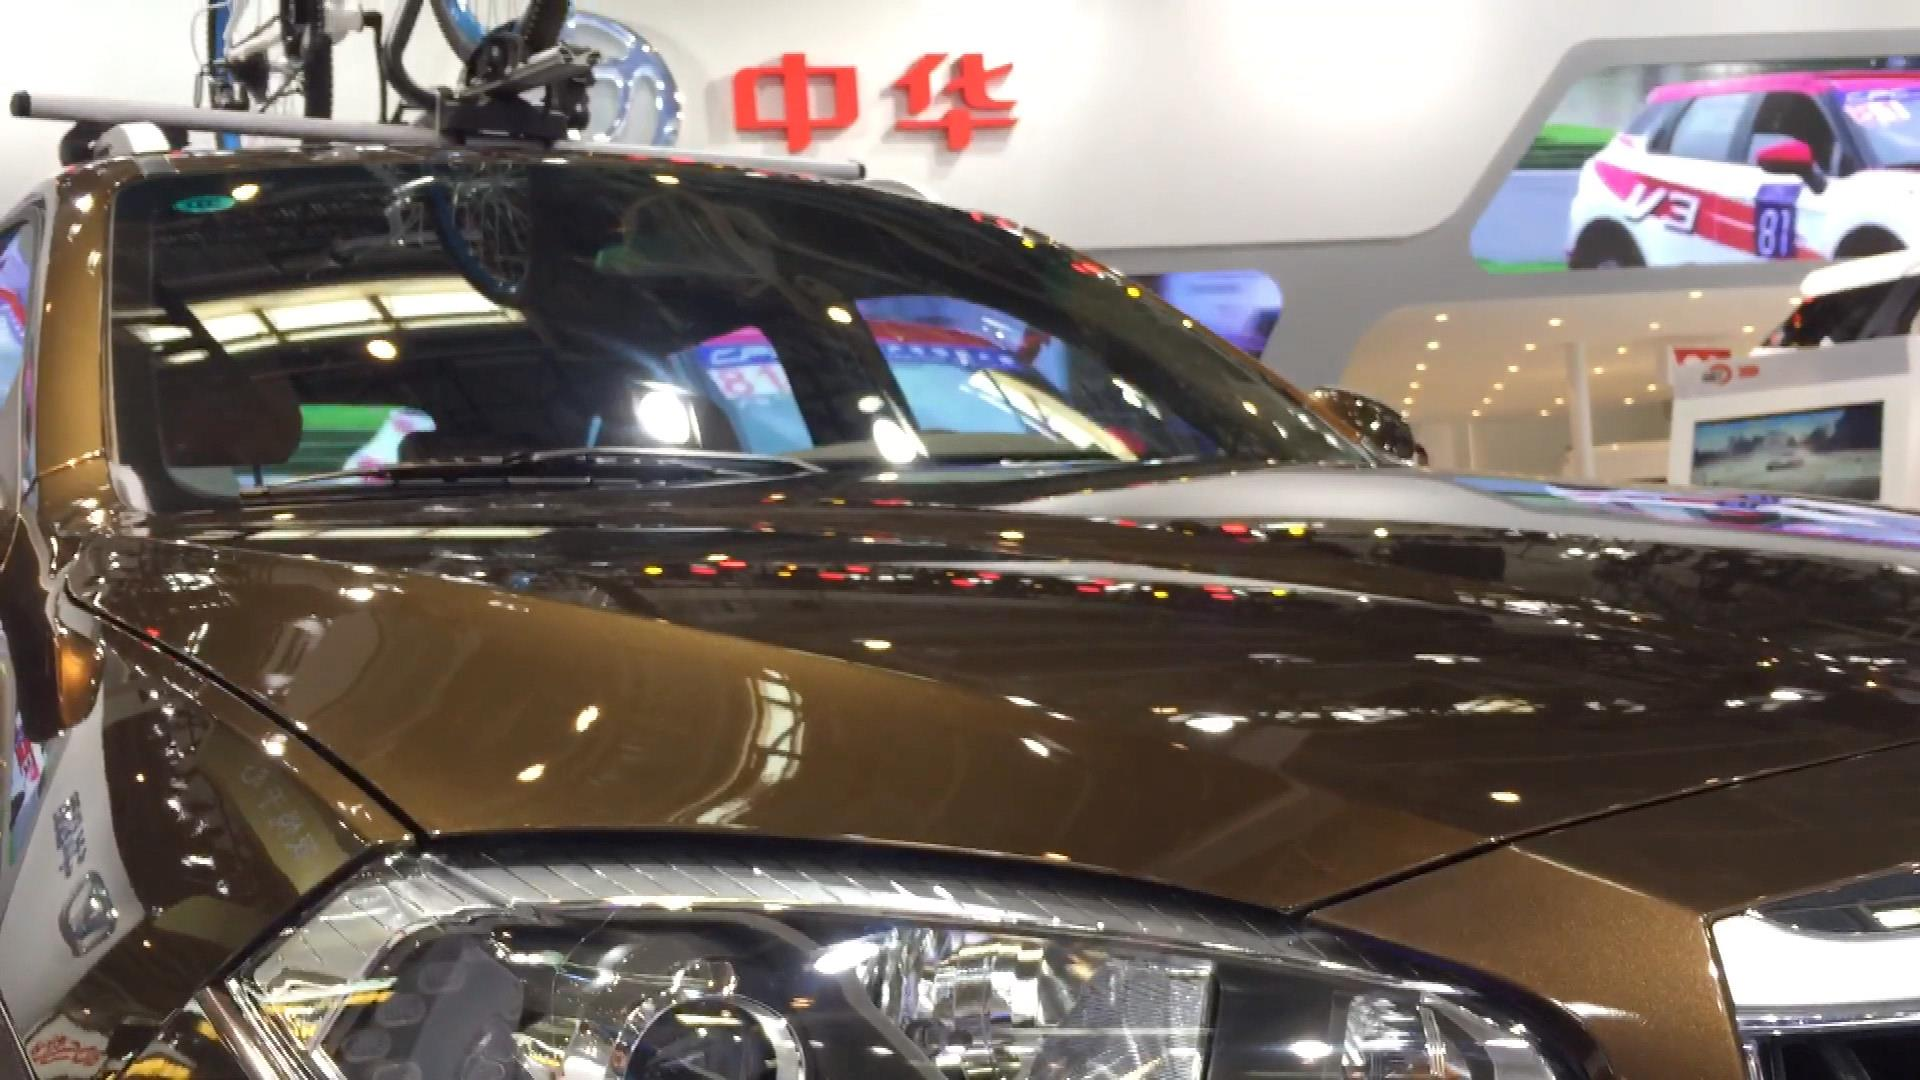 Chinese Clone Cars Raise the Ire of Western Automakers